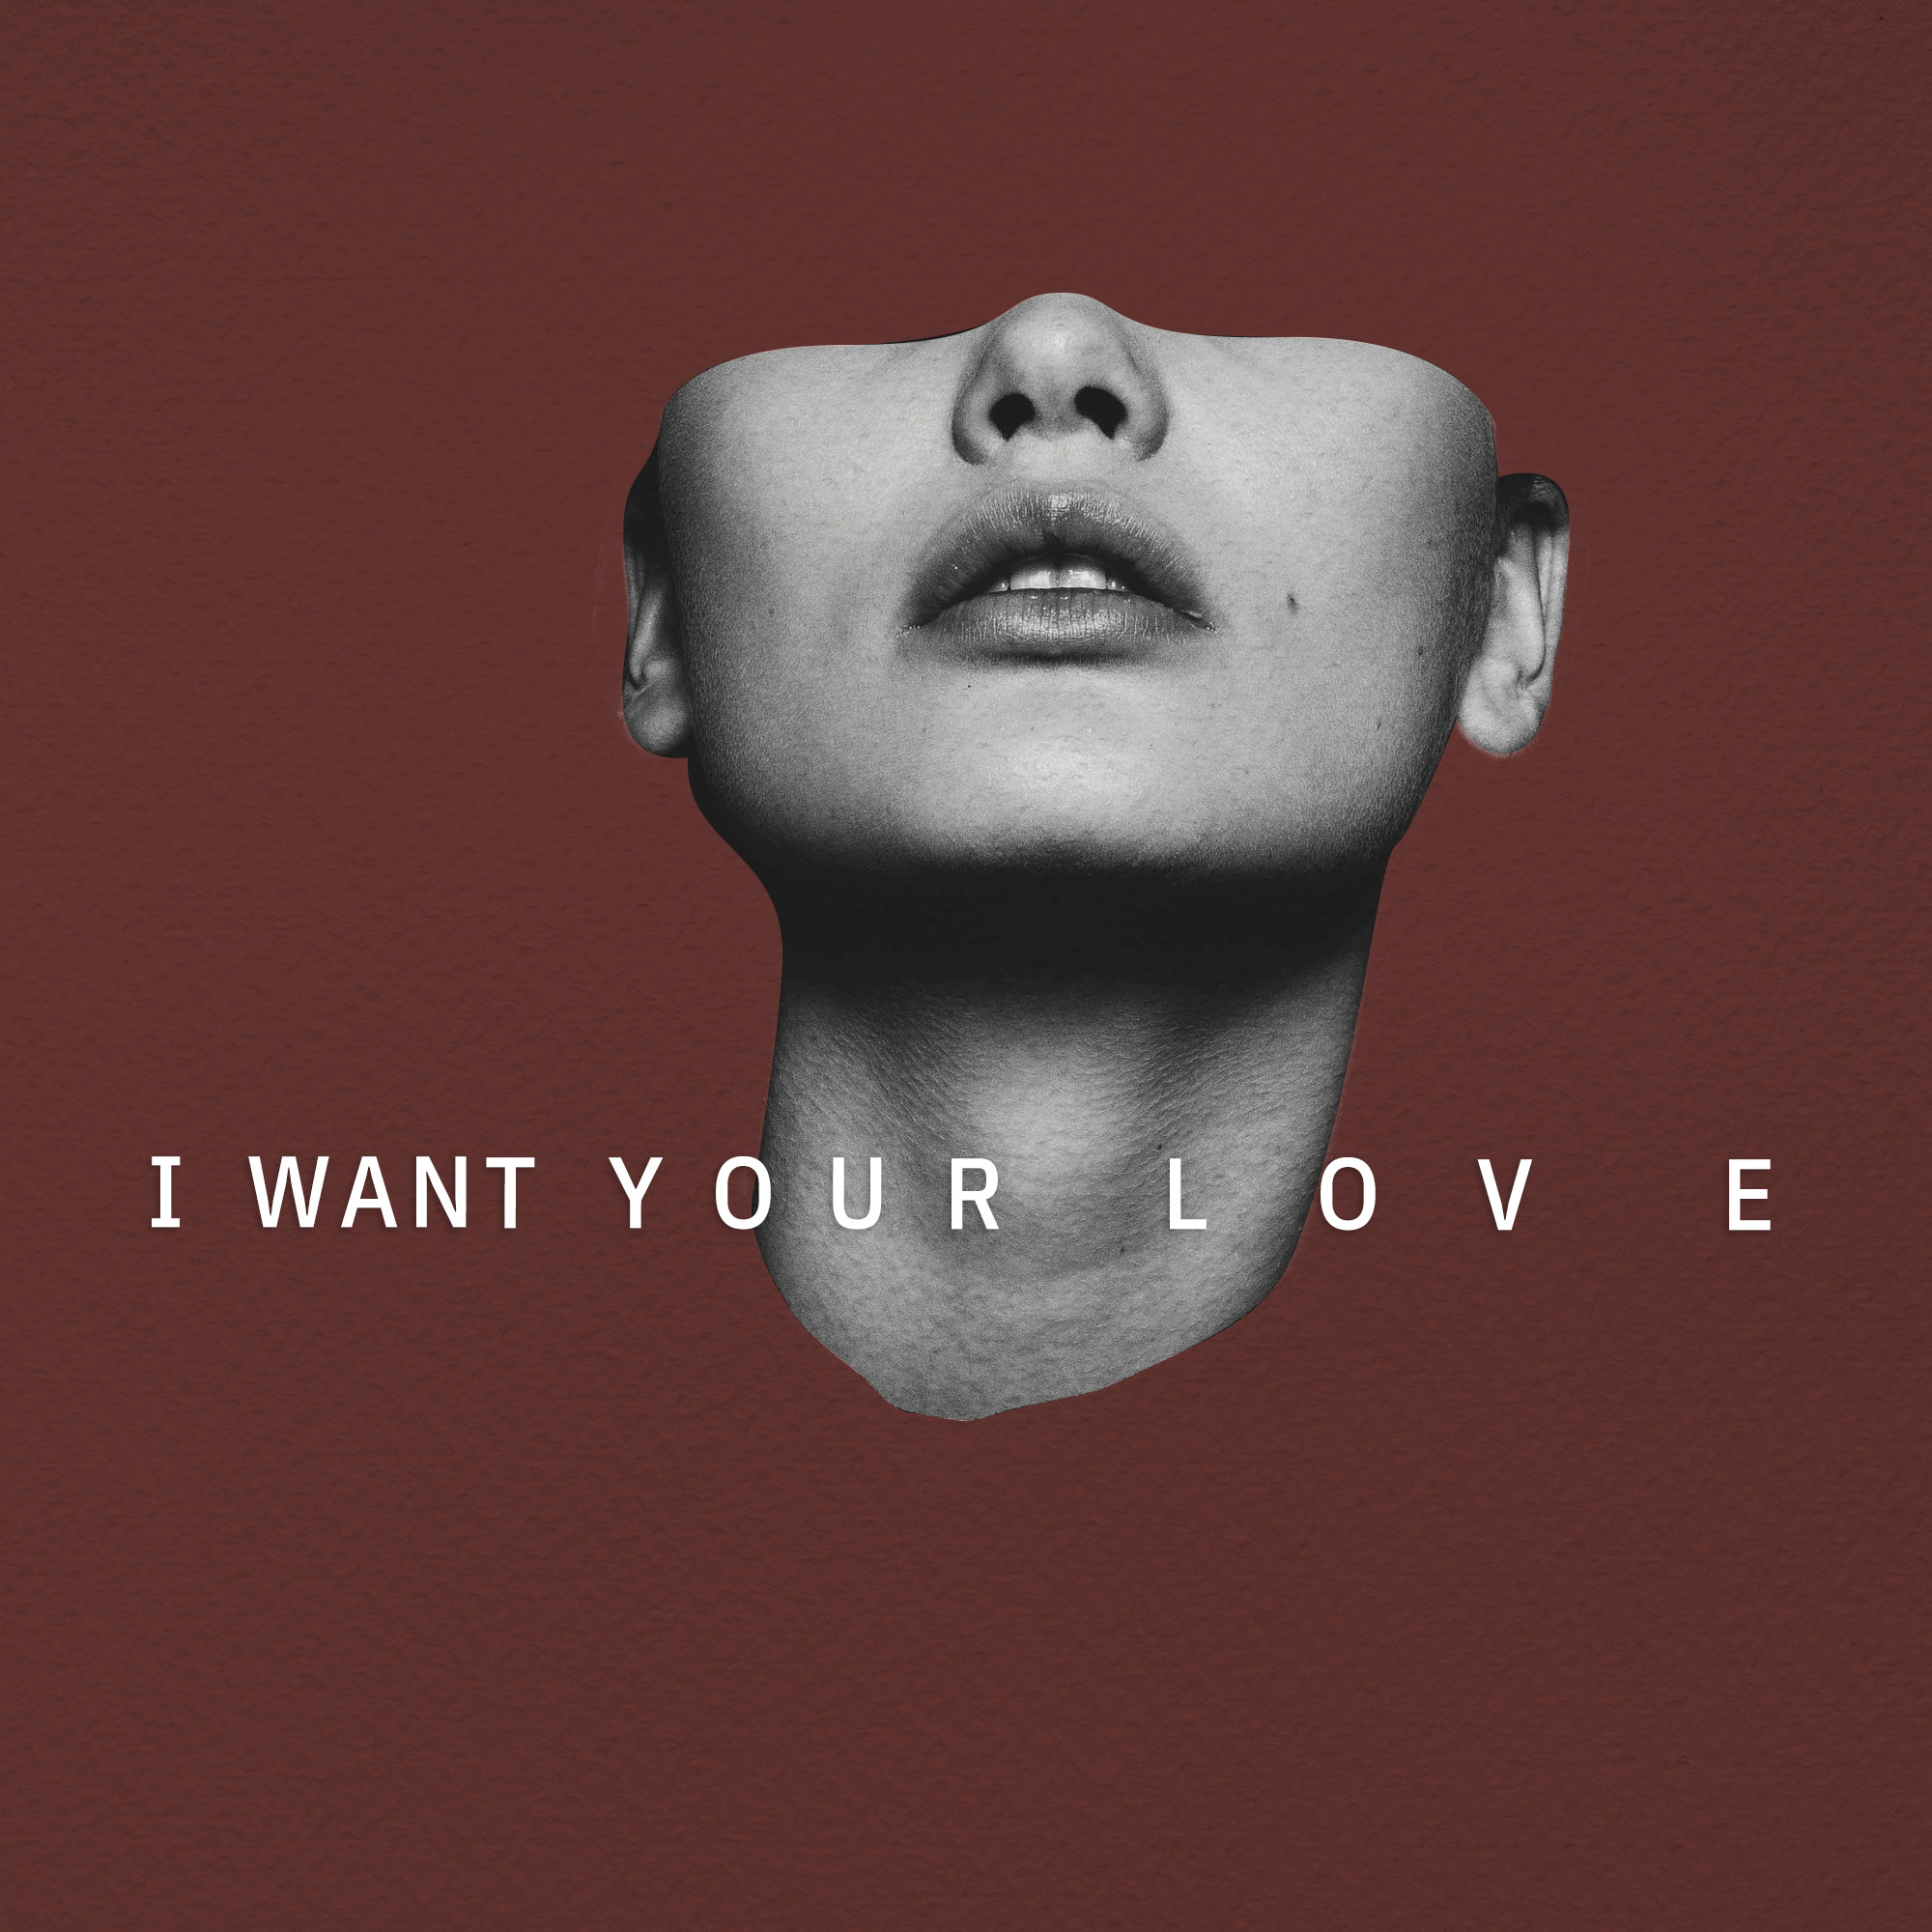 I Want Your Love - Craig Haller